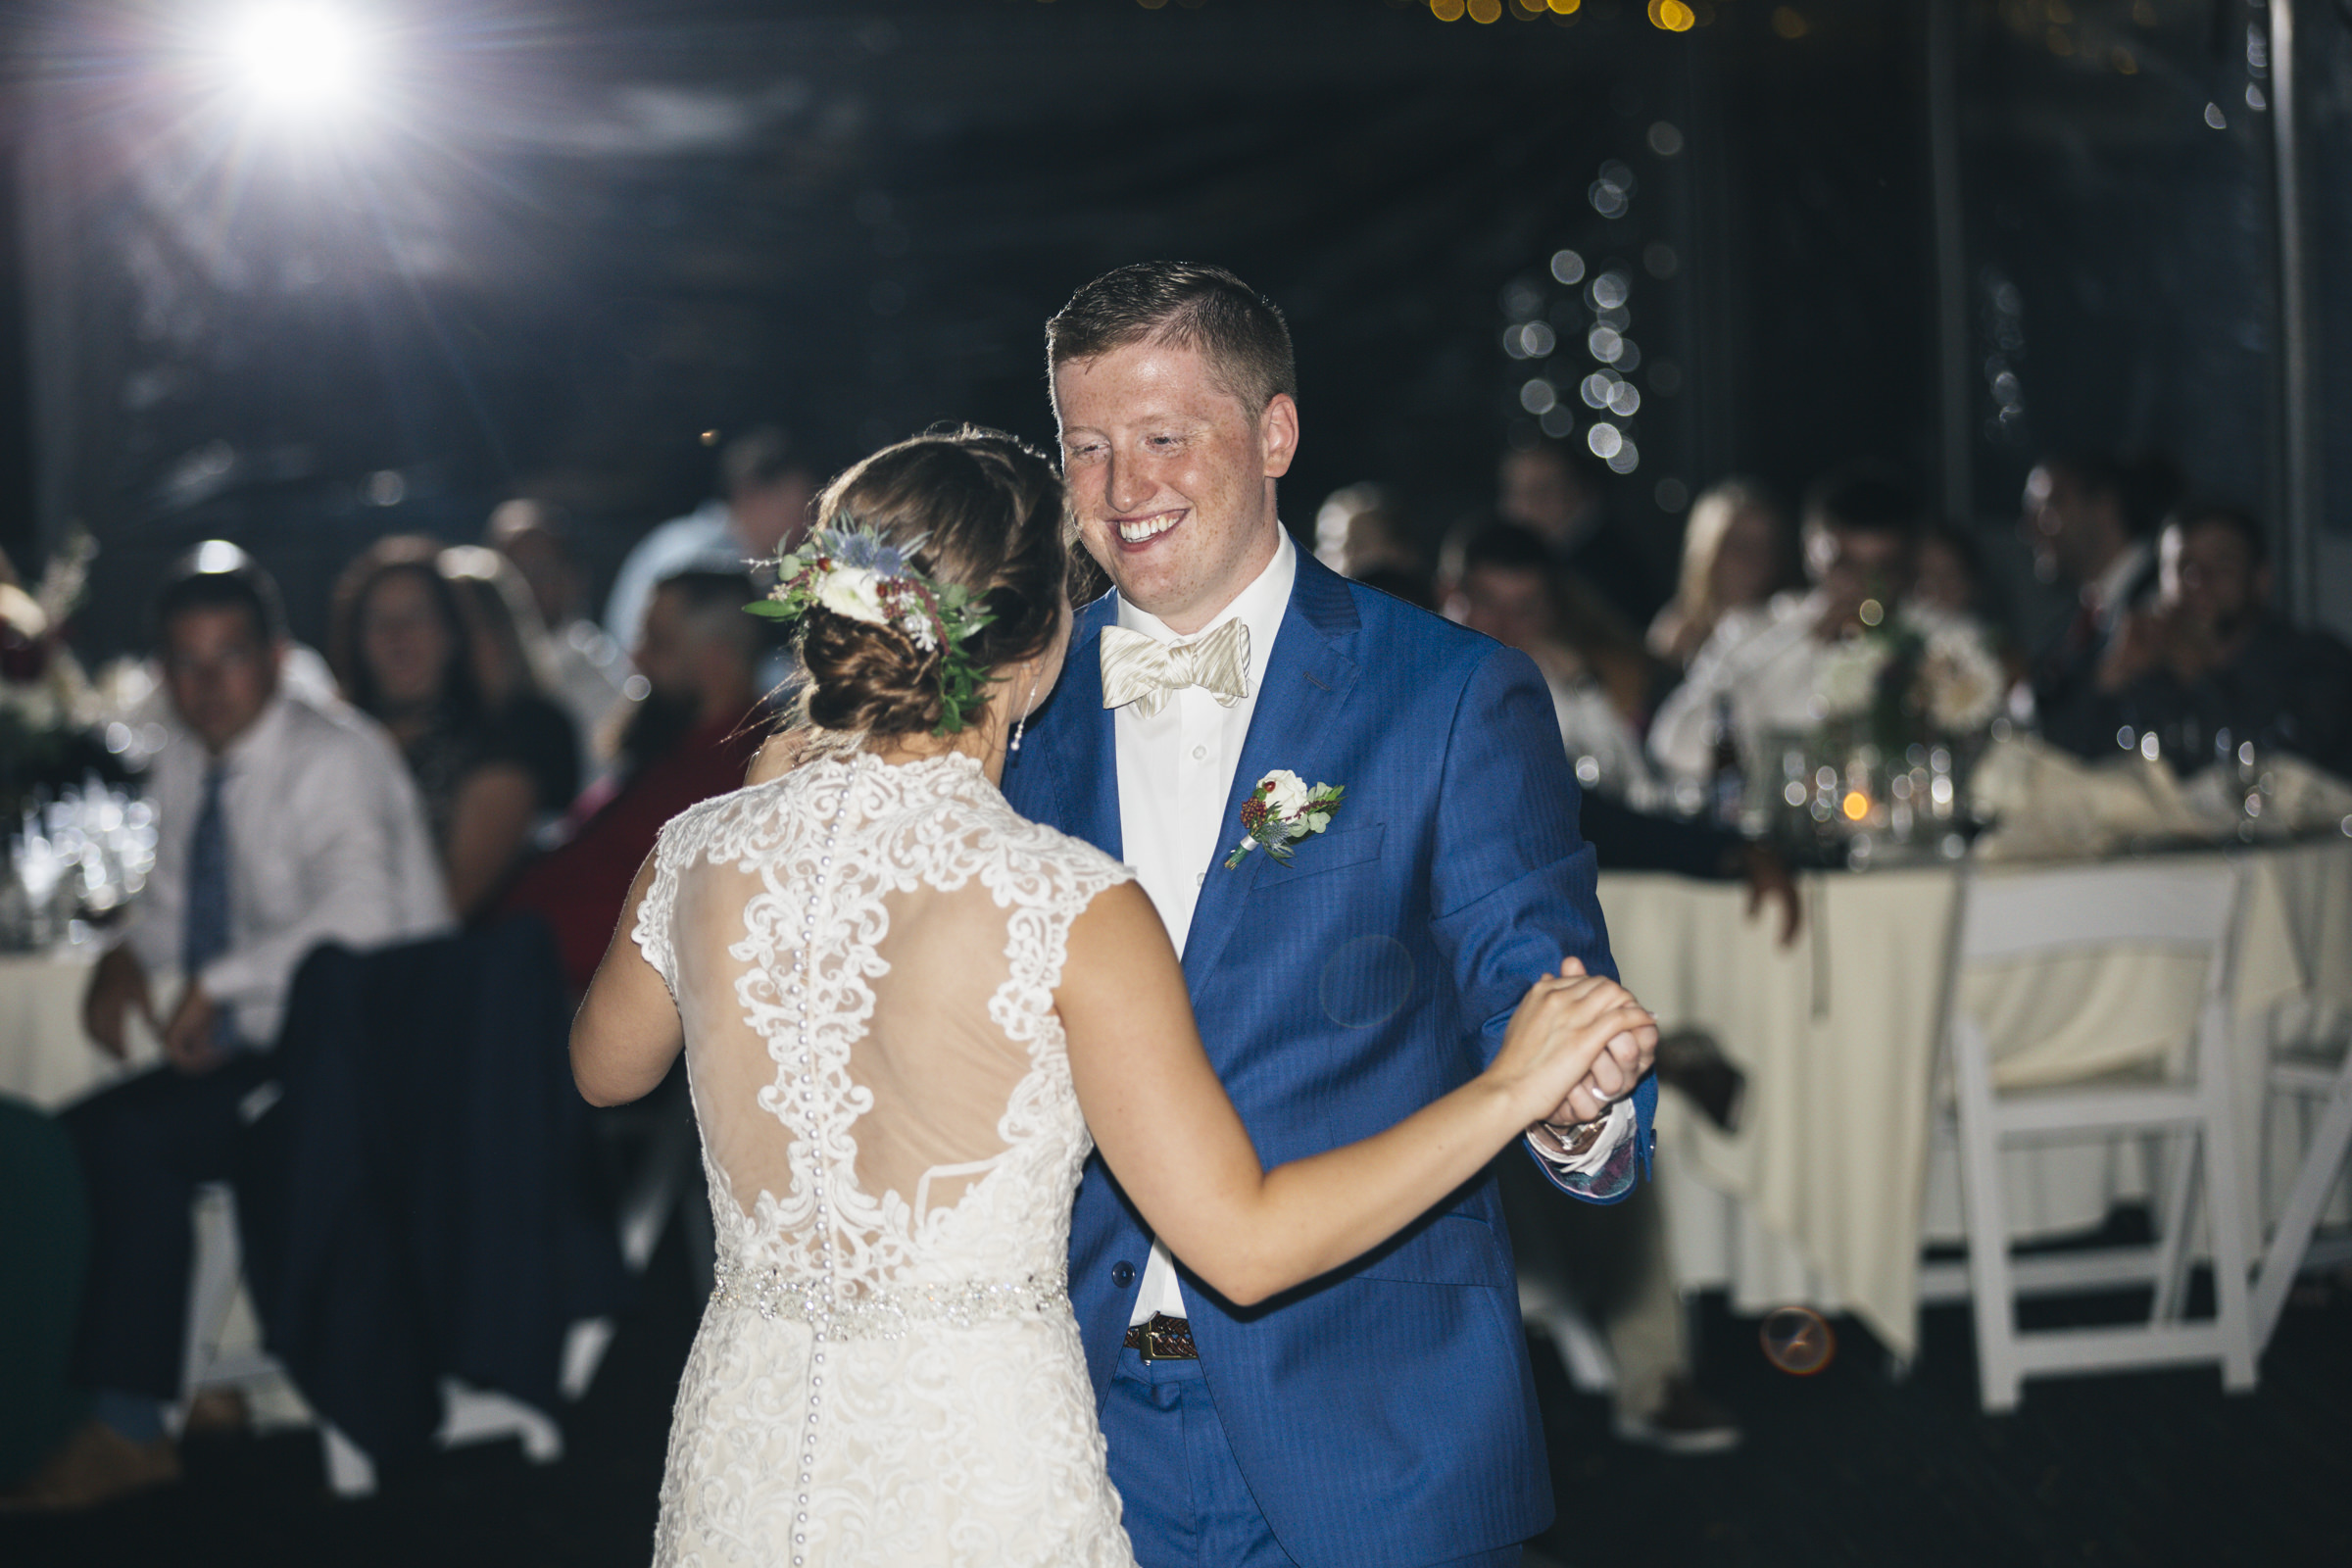 Bride and groom dance their first dance as husband and wife at Belmont Country Club near Toledo Ohio